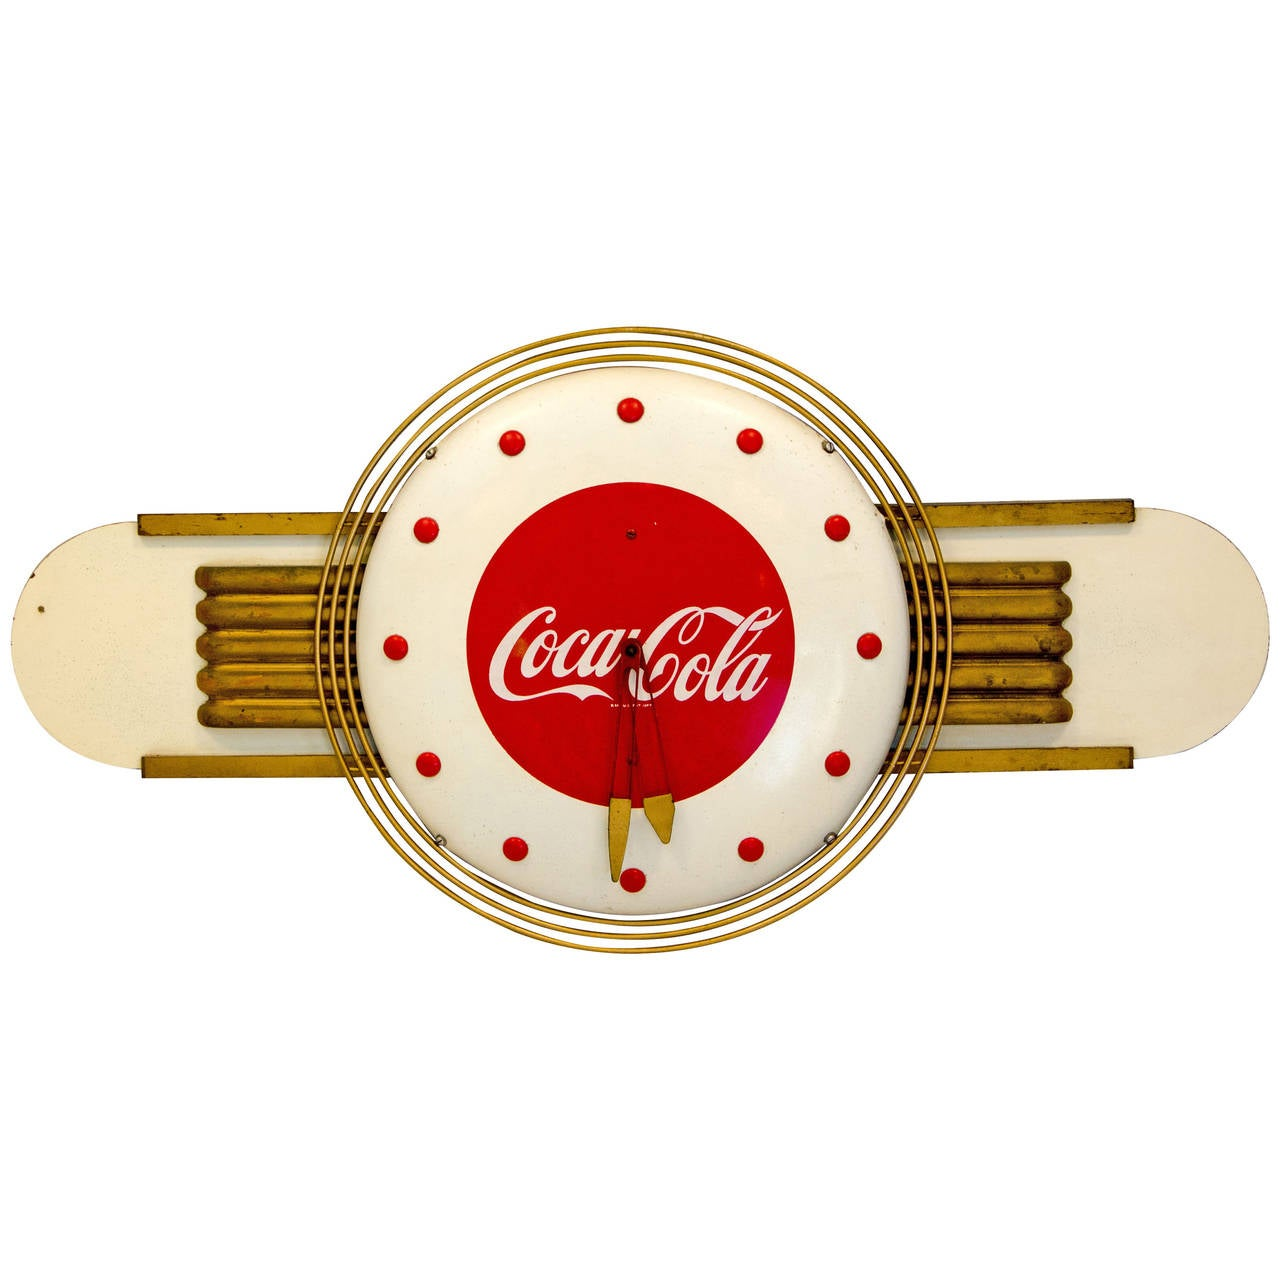 coca cola art deco style wall clock at 1stdibs. Black Bedroom Furniture Sets. Home Design Ideas